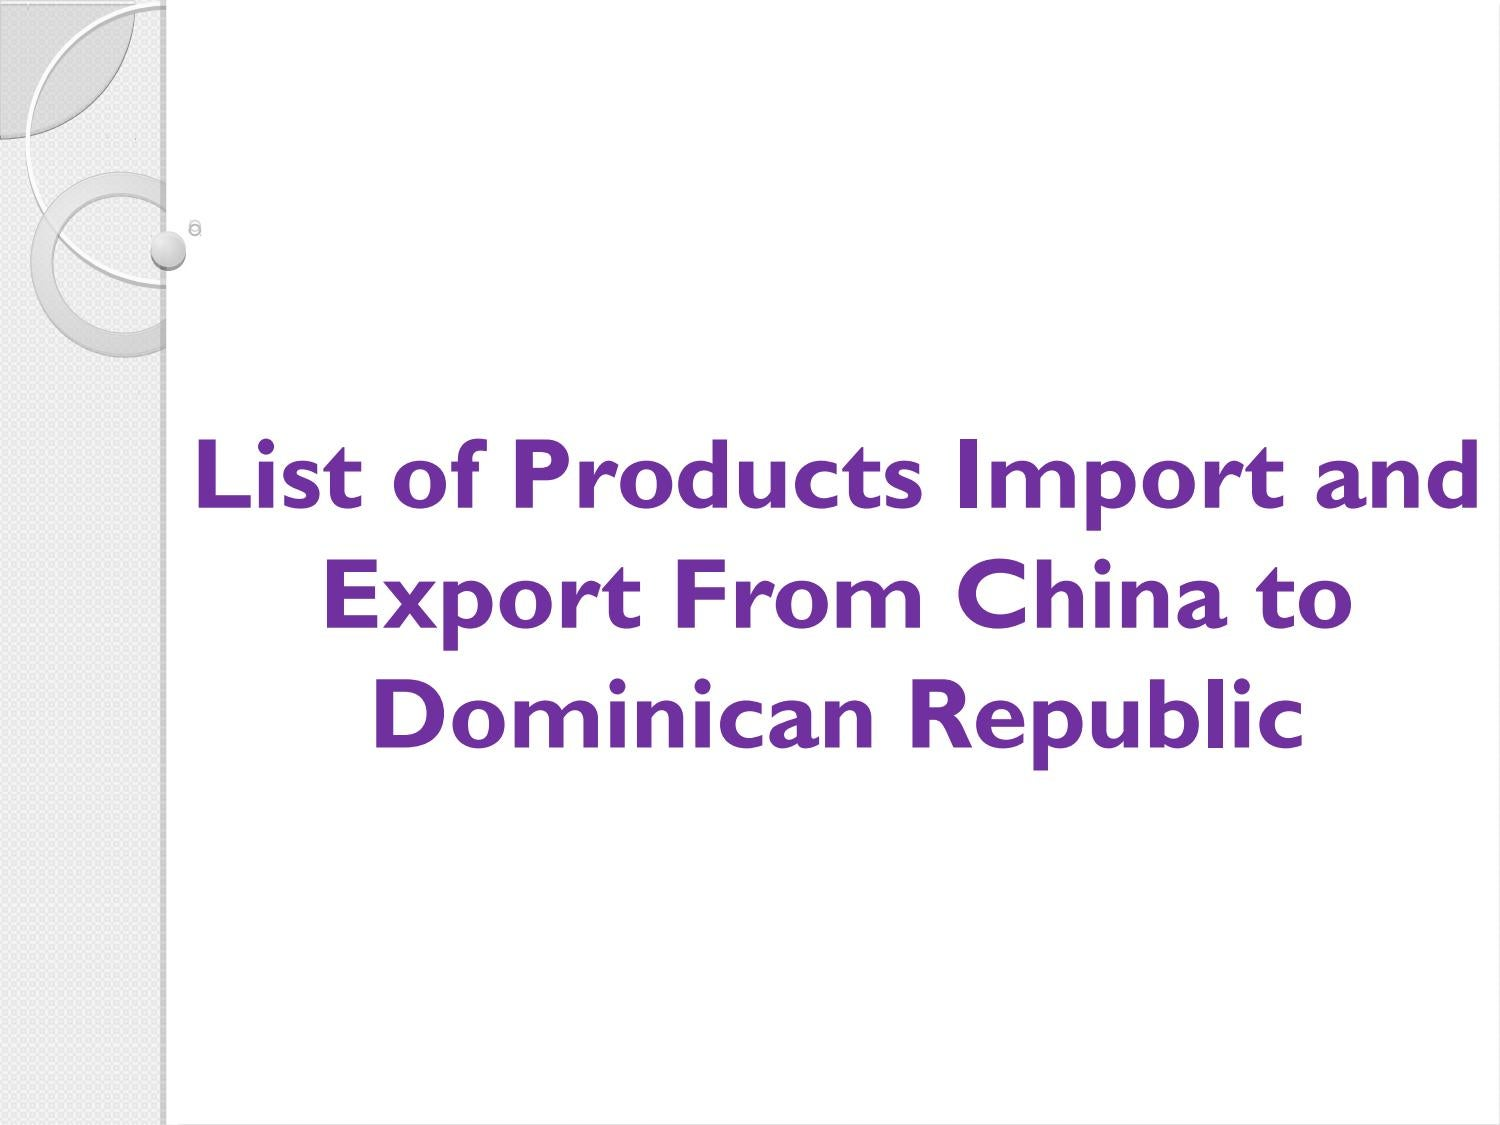 List of Products Import and Export From China to Dominican